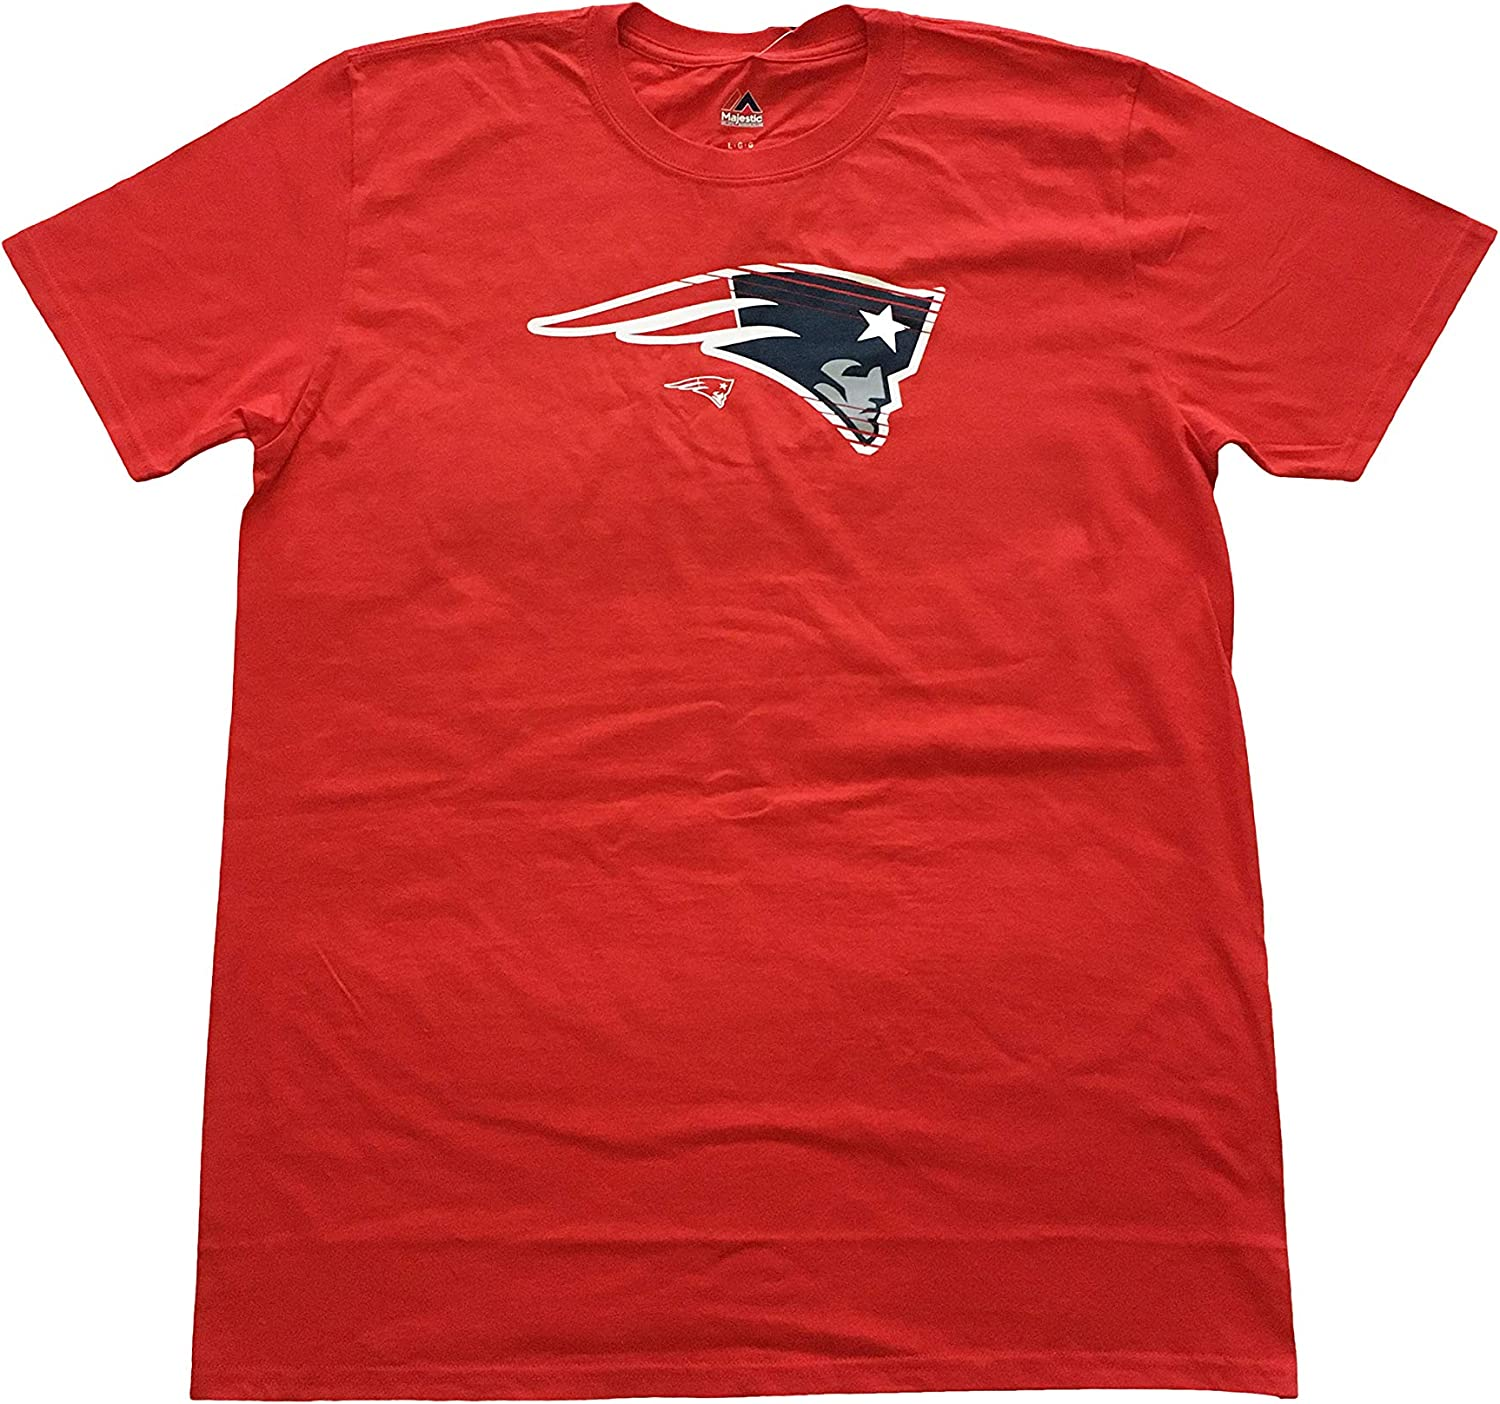 Majestic Mens T-Shirts NFL New England Patriots Crew Neck On to The Win T-Shirt